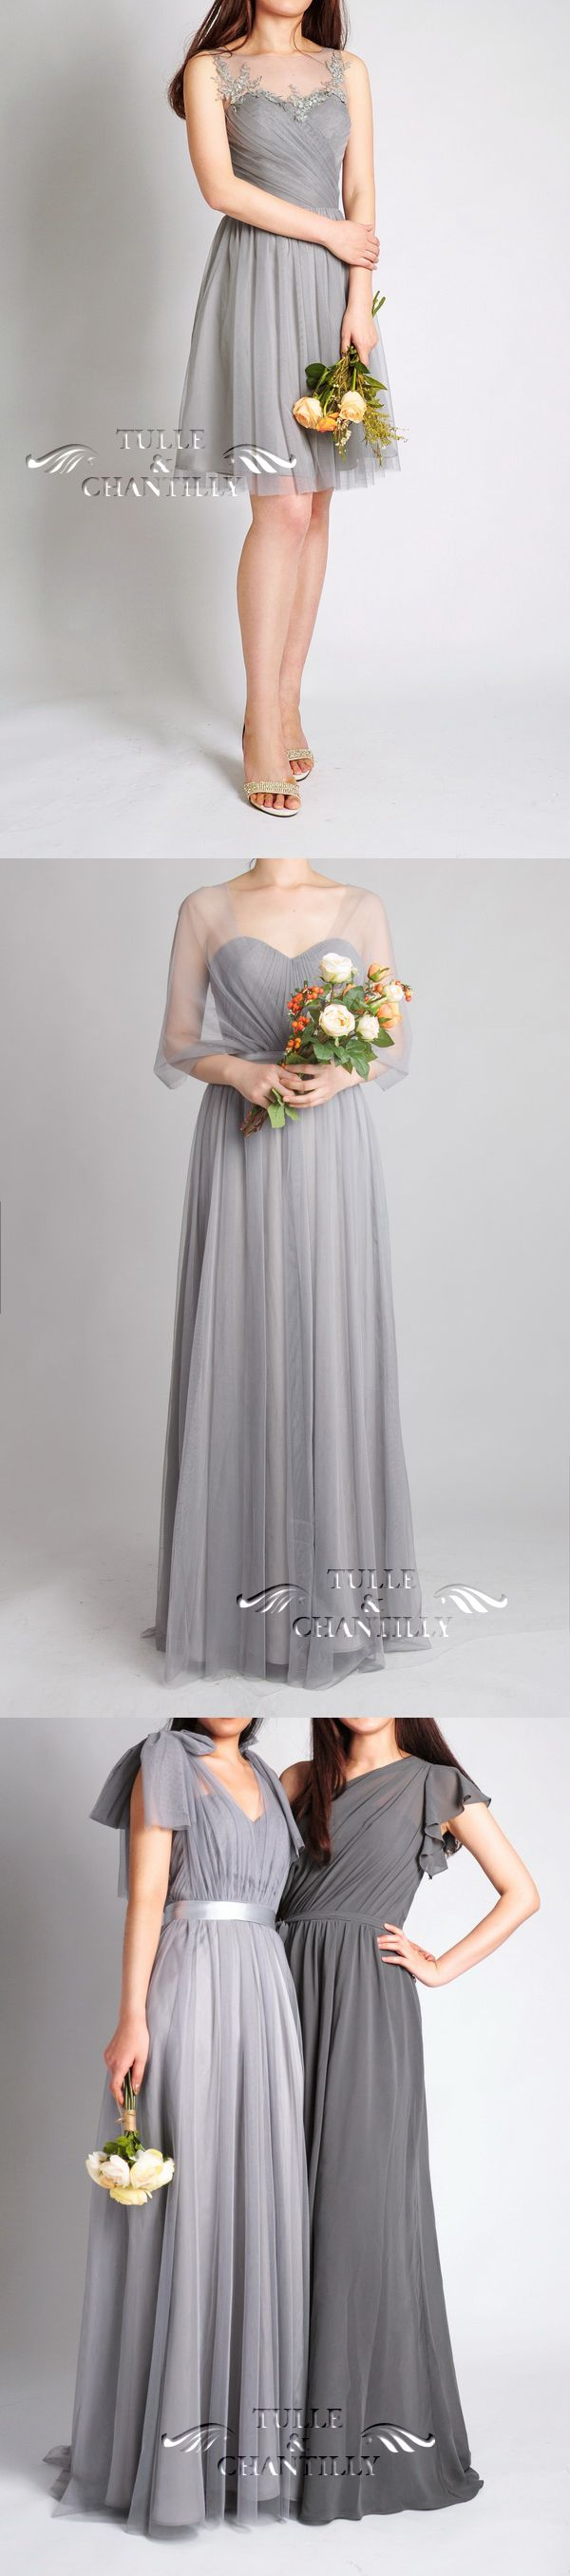 grey wedding color ideas and tulle gray bridesmaid dresses 2015 trends